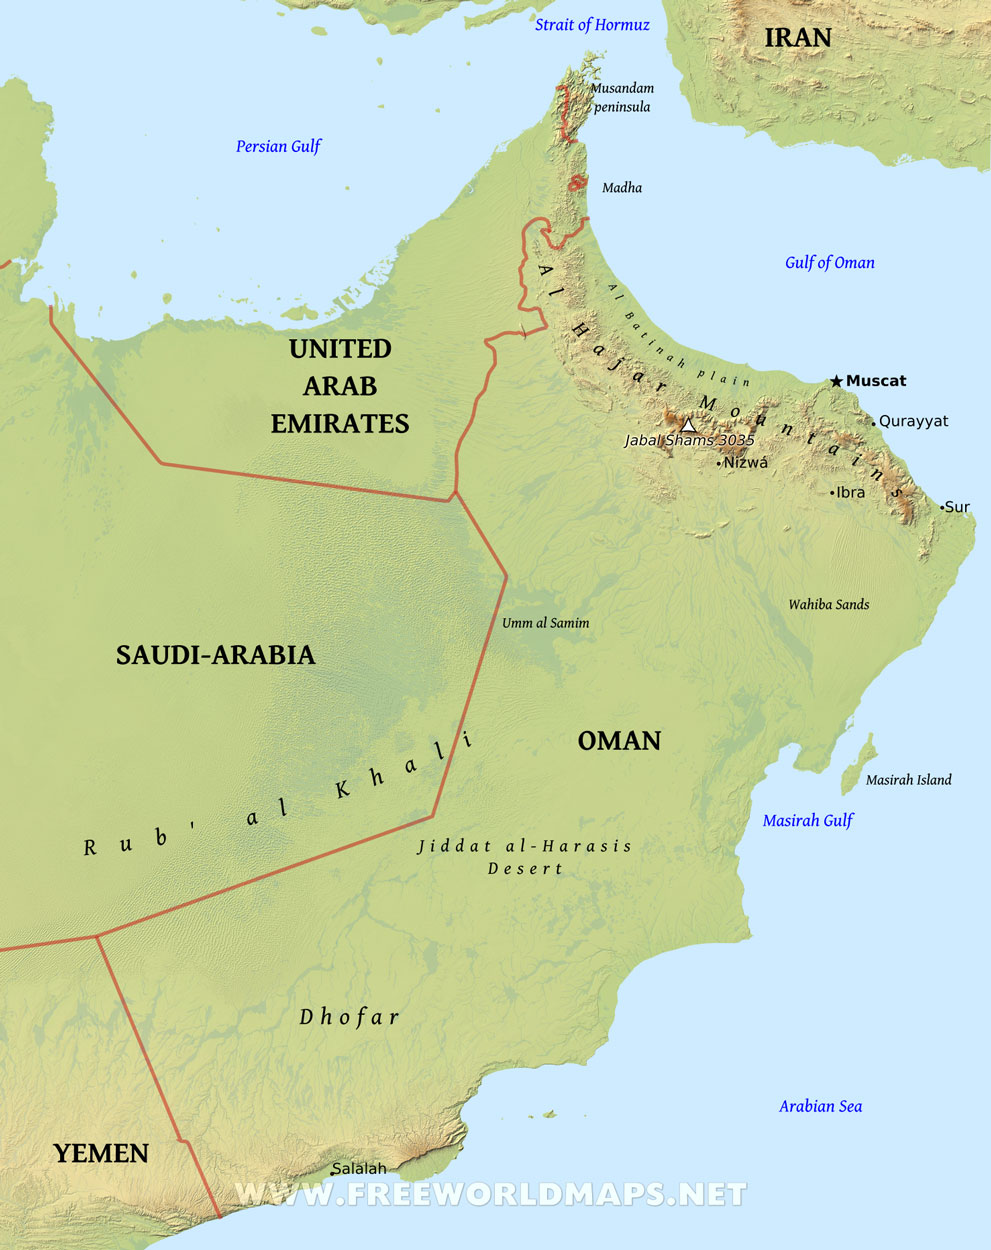 Oman Physical Map on map in cyprus, map in jamaica, map in botswana, map in nigeria, map in somalia, map in guatemala, map in nicaragua, map in burma, map in himalayas, map in mali, map in mongolia, map in belgium, map in sudan, map in bhutan, map in denmark, map in netherlands, map in yemen, map in iceland, map in honduras, map in mauritius,